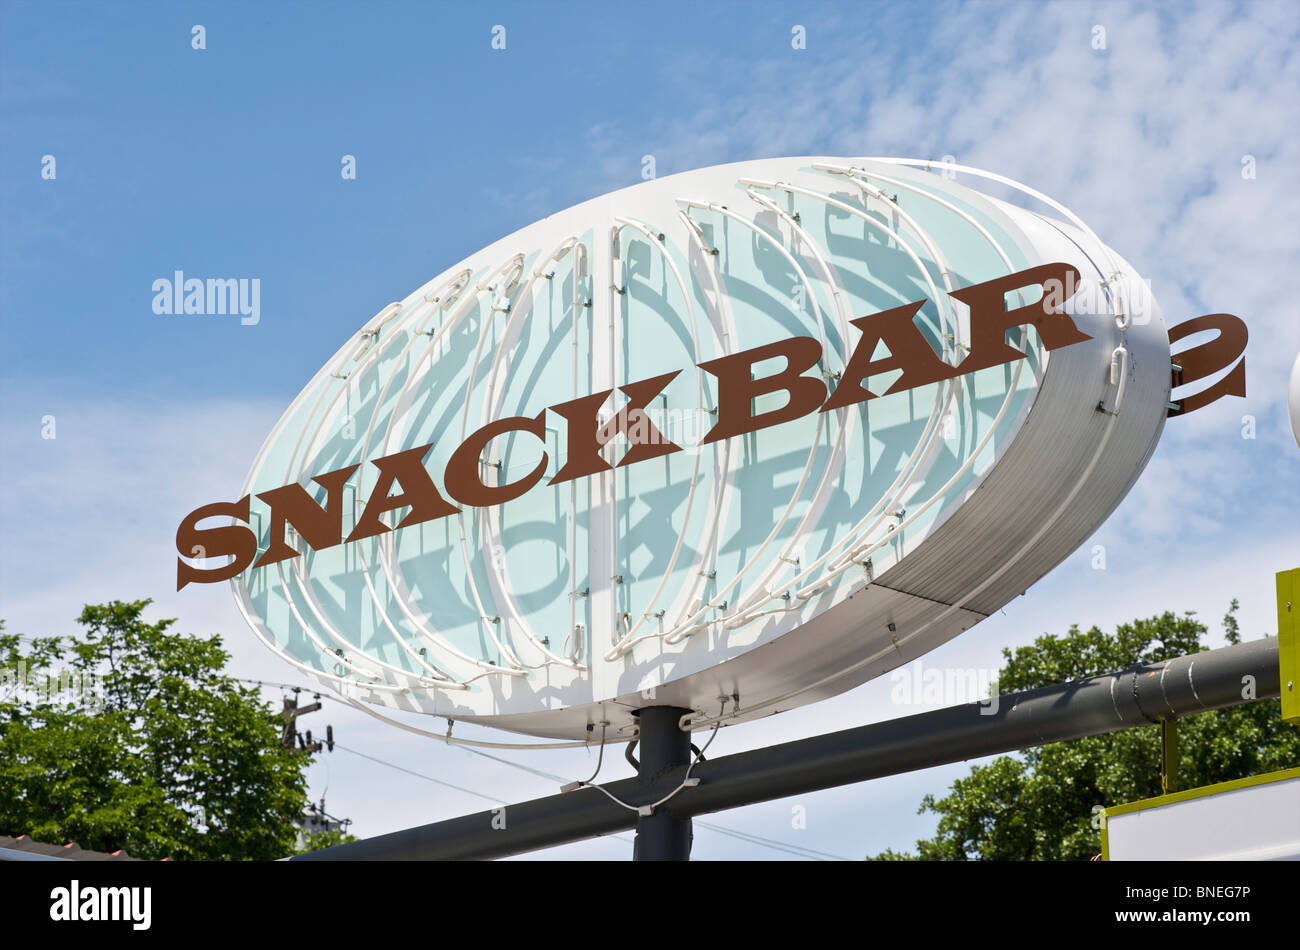 Snack-bar Neon Sign, Austin, Texas, USA Banque D'Images